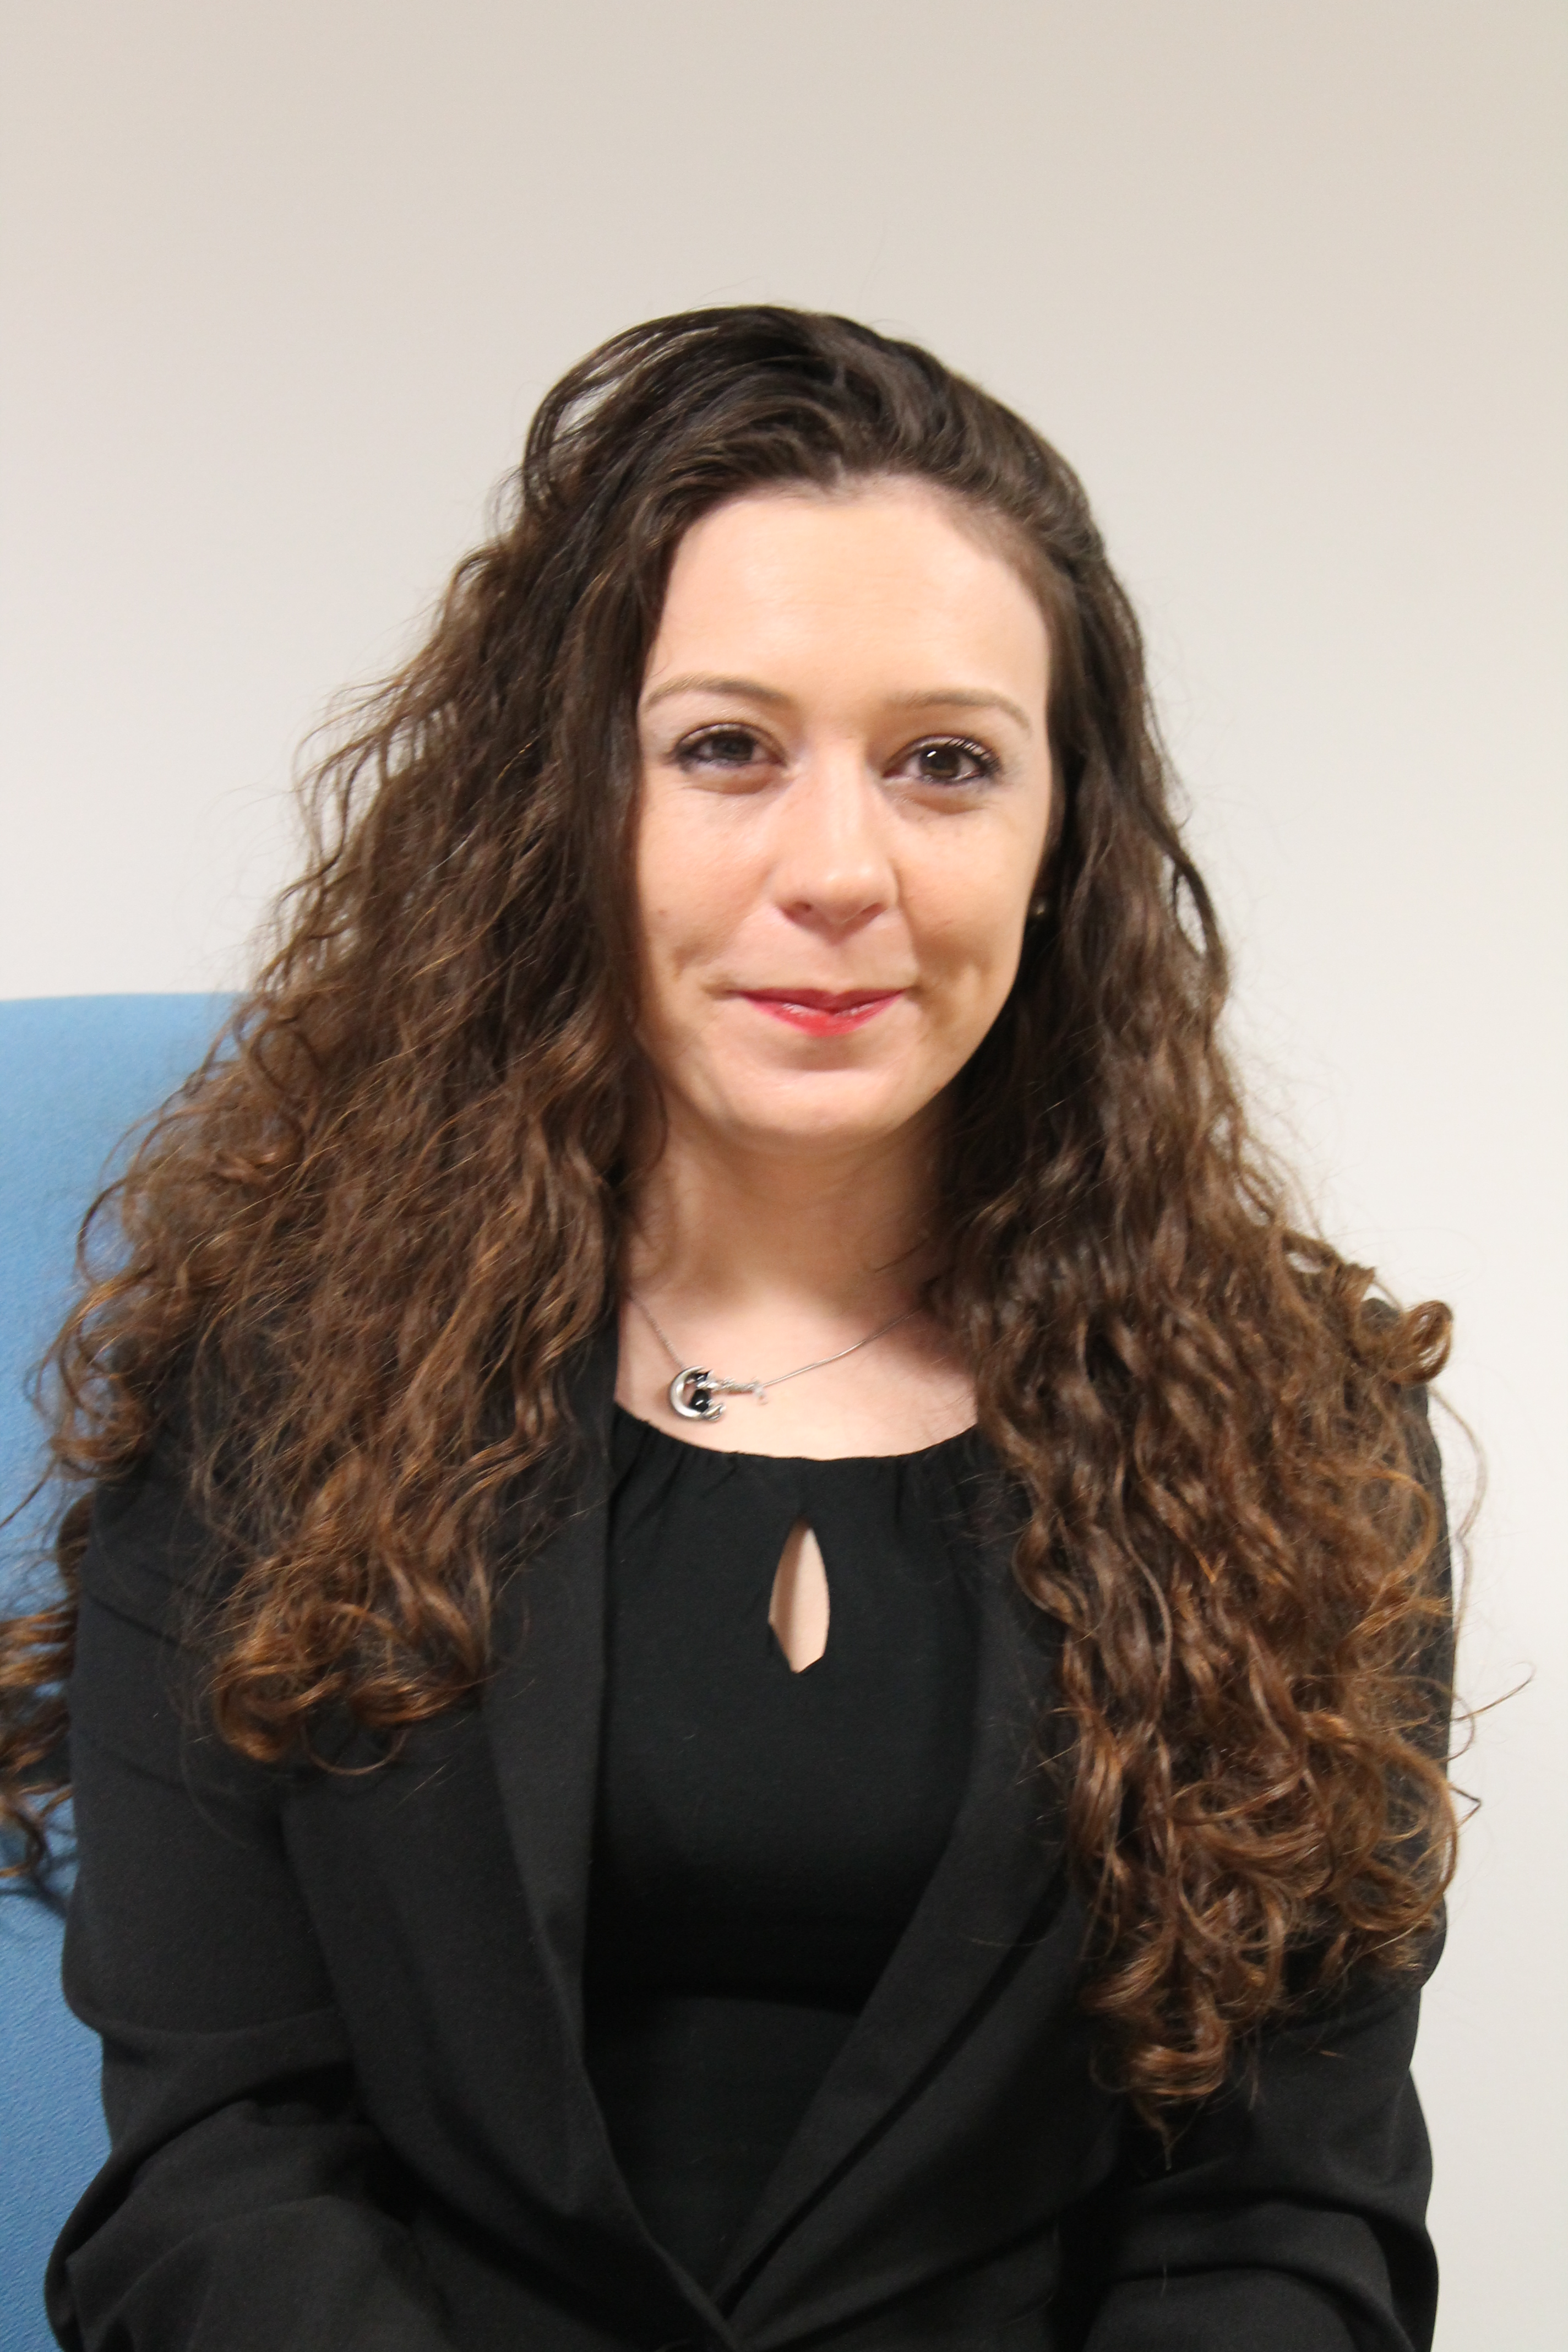 Press Release - UTN Training Appoints Business Development Manager